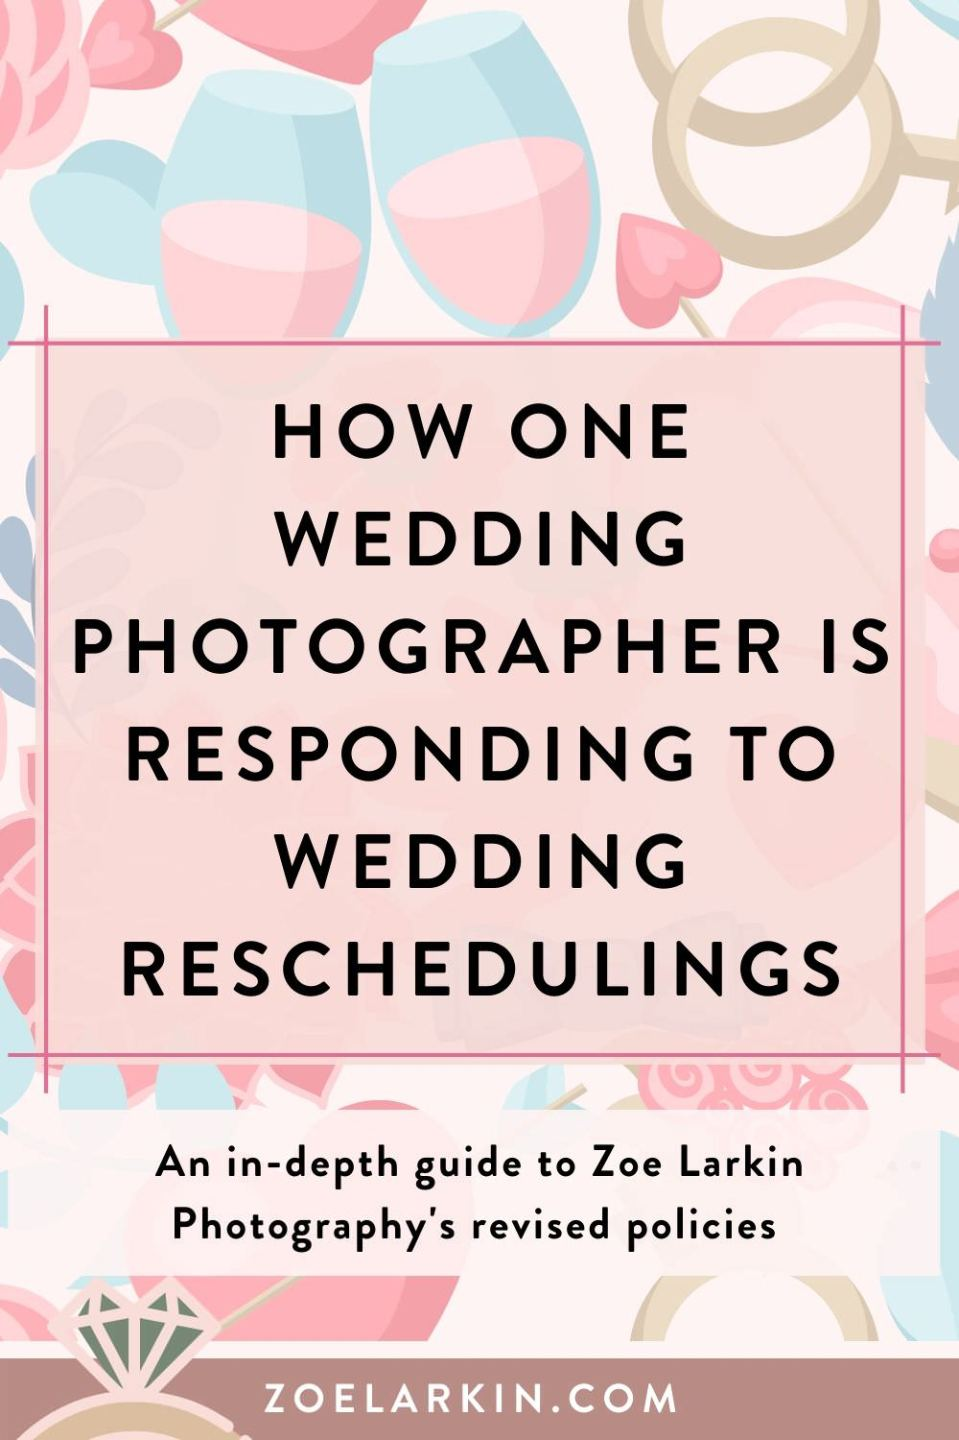 How one wedding photographer is dealing with wedding reschedulings. I outline the policies that help my business, Zoe Larkin Photography, as I deal with clients who need to change their wedding plans due to COVID-19 and are dealing with uncertainty and confusion. Find out what works for my wedding photography business and how you might put into place policies that offer flexibility and understanding of your clients' needs.  |  #weddings #weddingvendors | Zoe Larkin Photography